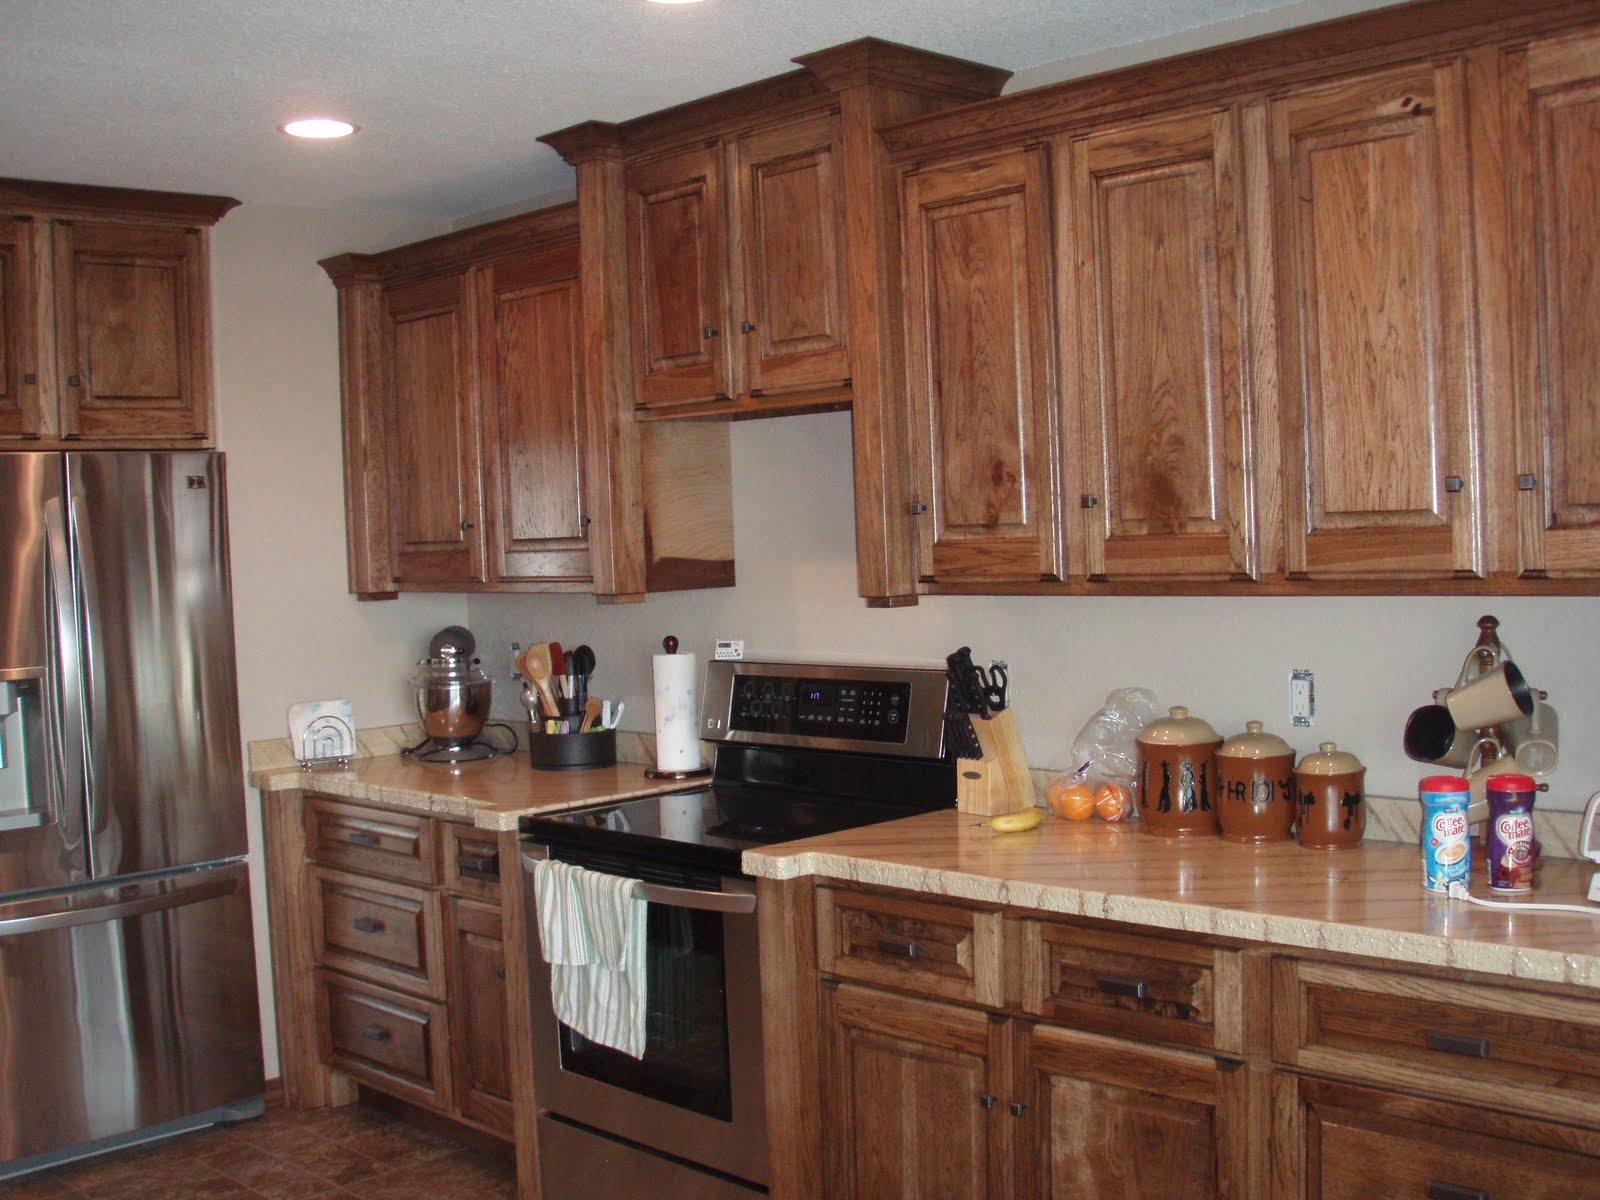 Hickory Kitchen Cabinets High Table Sets Backer 39s Woodworking With Granicrete